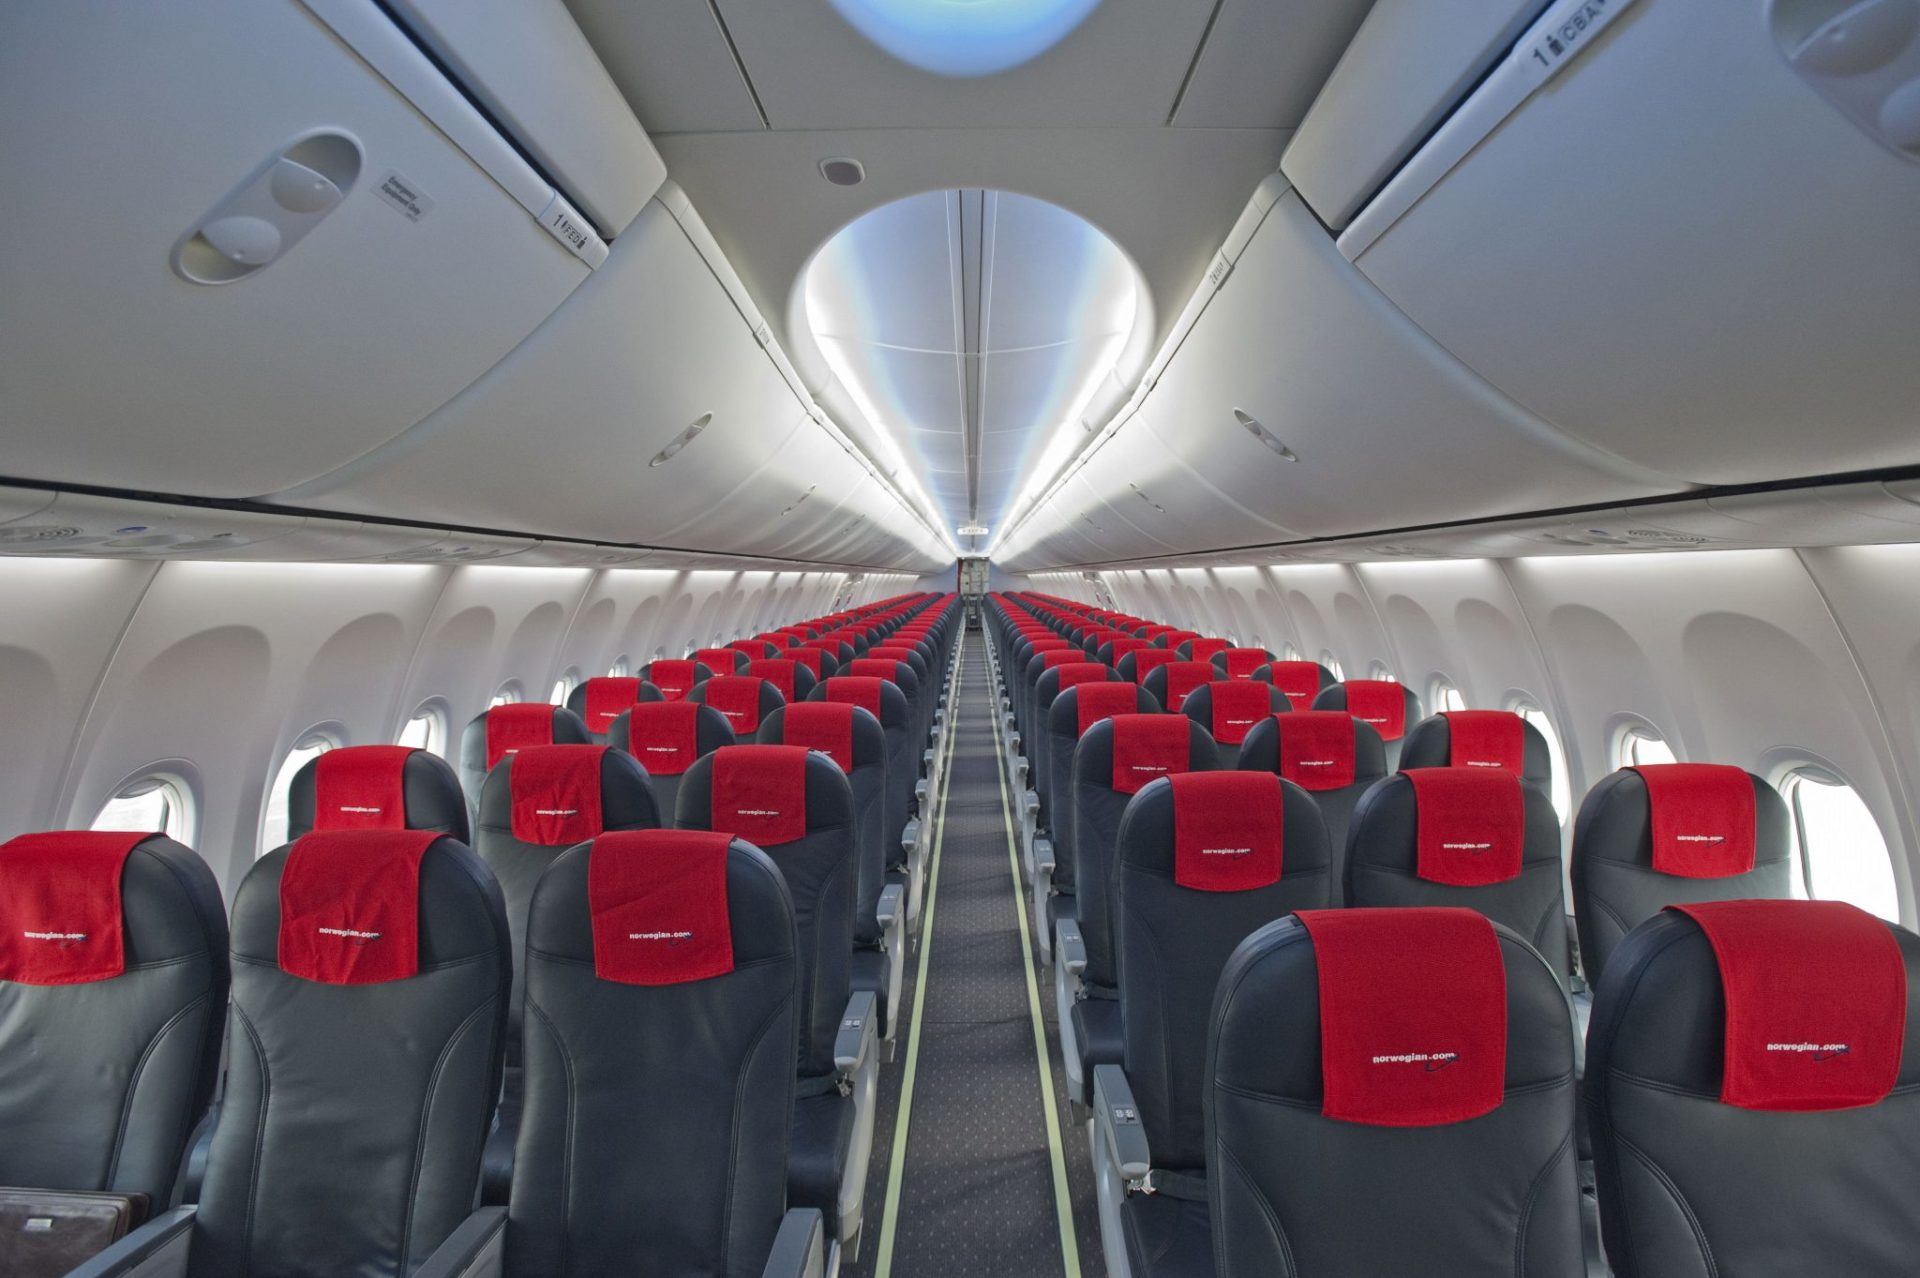 Norwegian Boeing 737 with Sky Interior (Image: Kevin Yoo/Boeing)